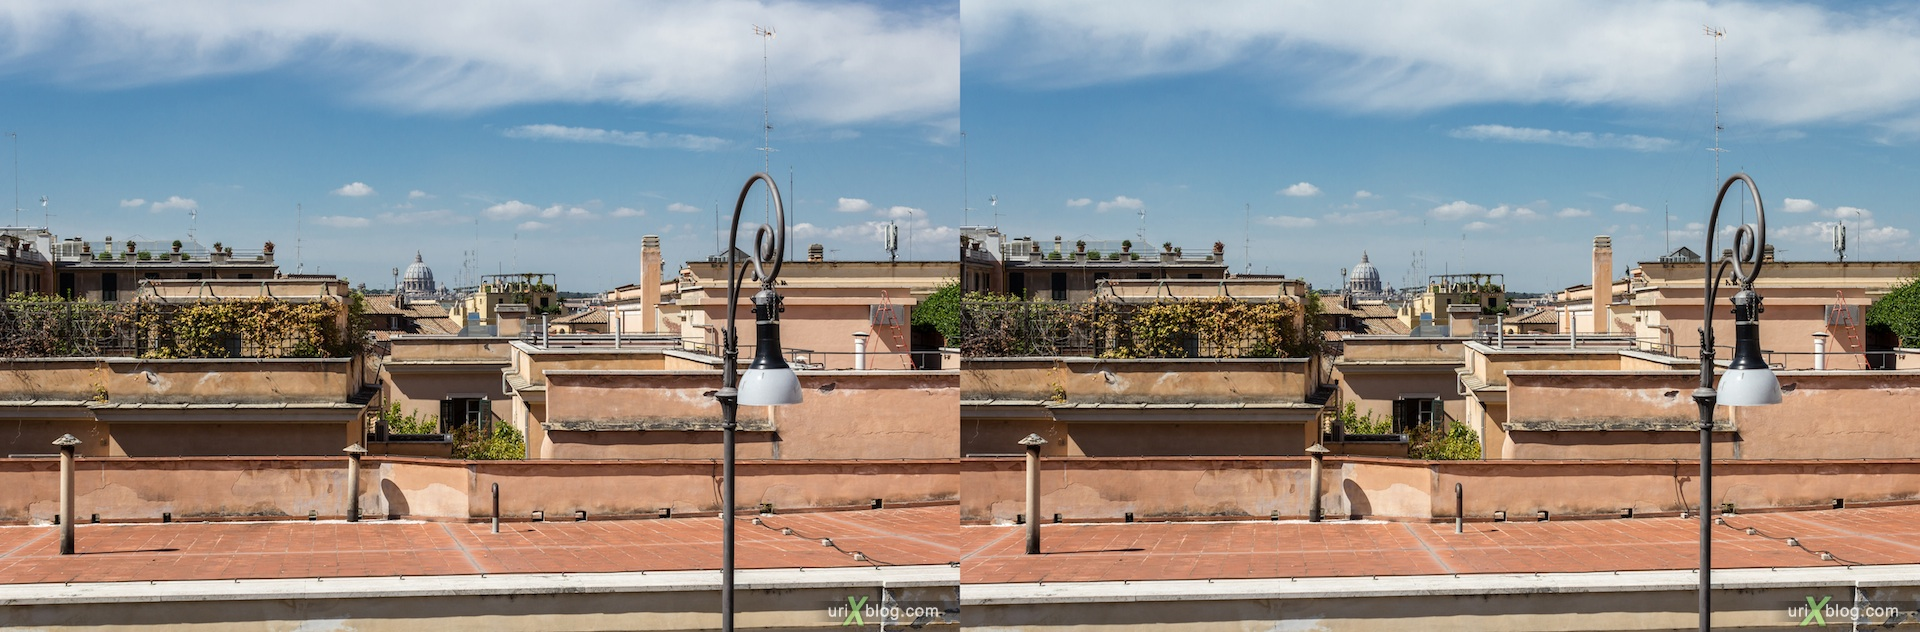 2012, Quirinal square, panorama, viewpoint, roofs, Rome, Italy, Europe, 3D, stereo pair, cross-eyed, crossview, cross view stereo pair